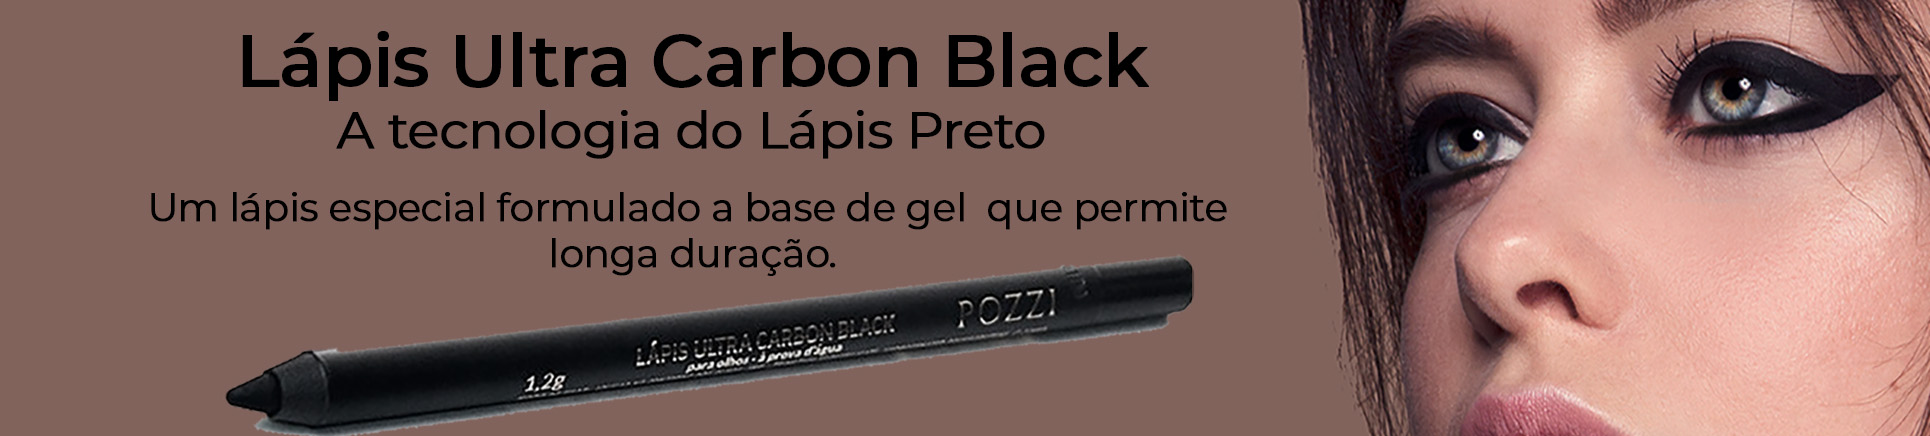 Lapis ultra carbon black